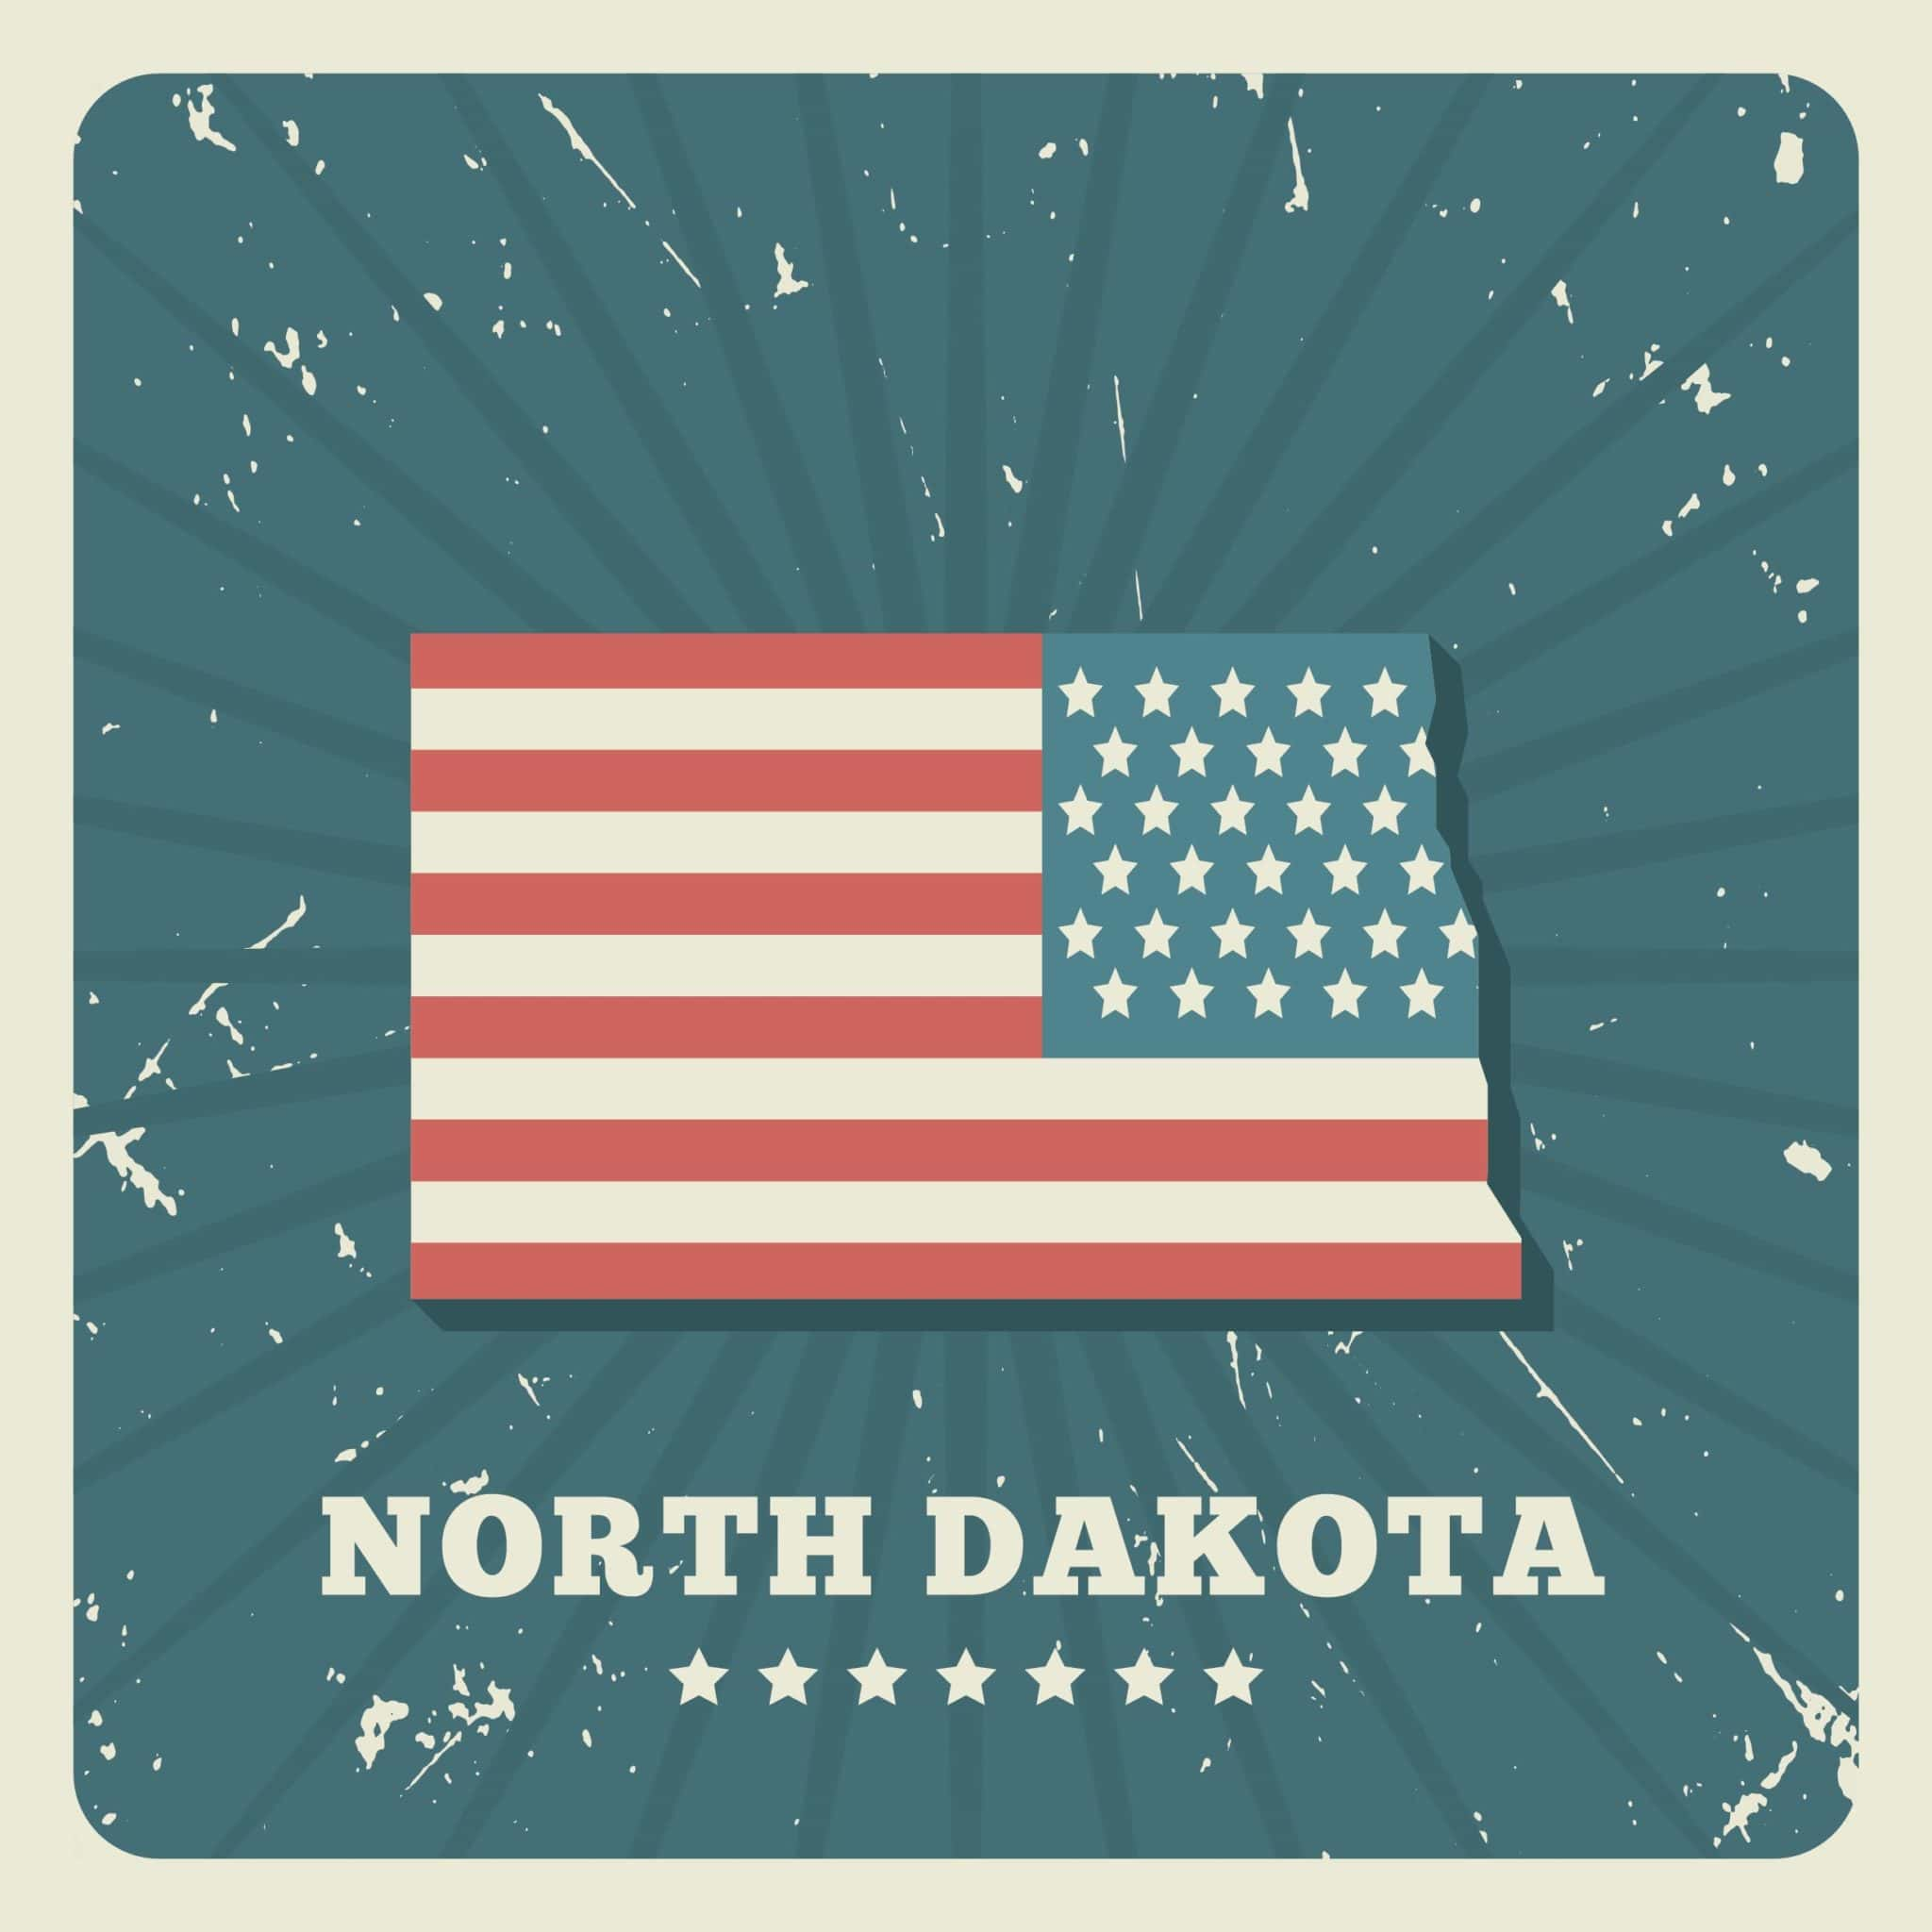 North Dakota May Miss A Prime Opportunity